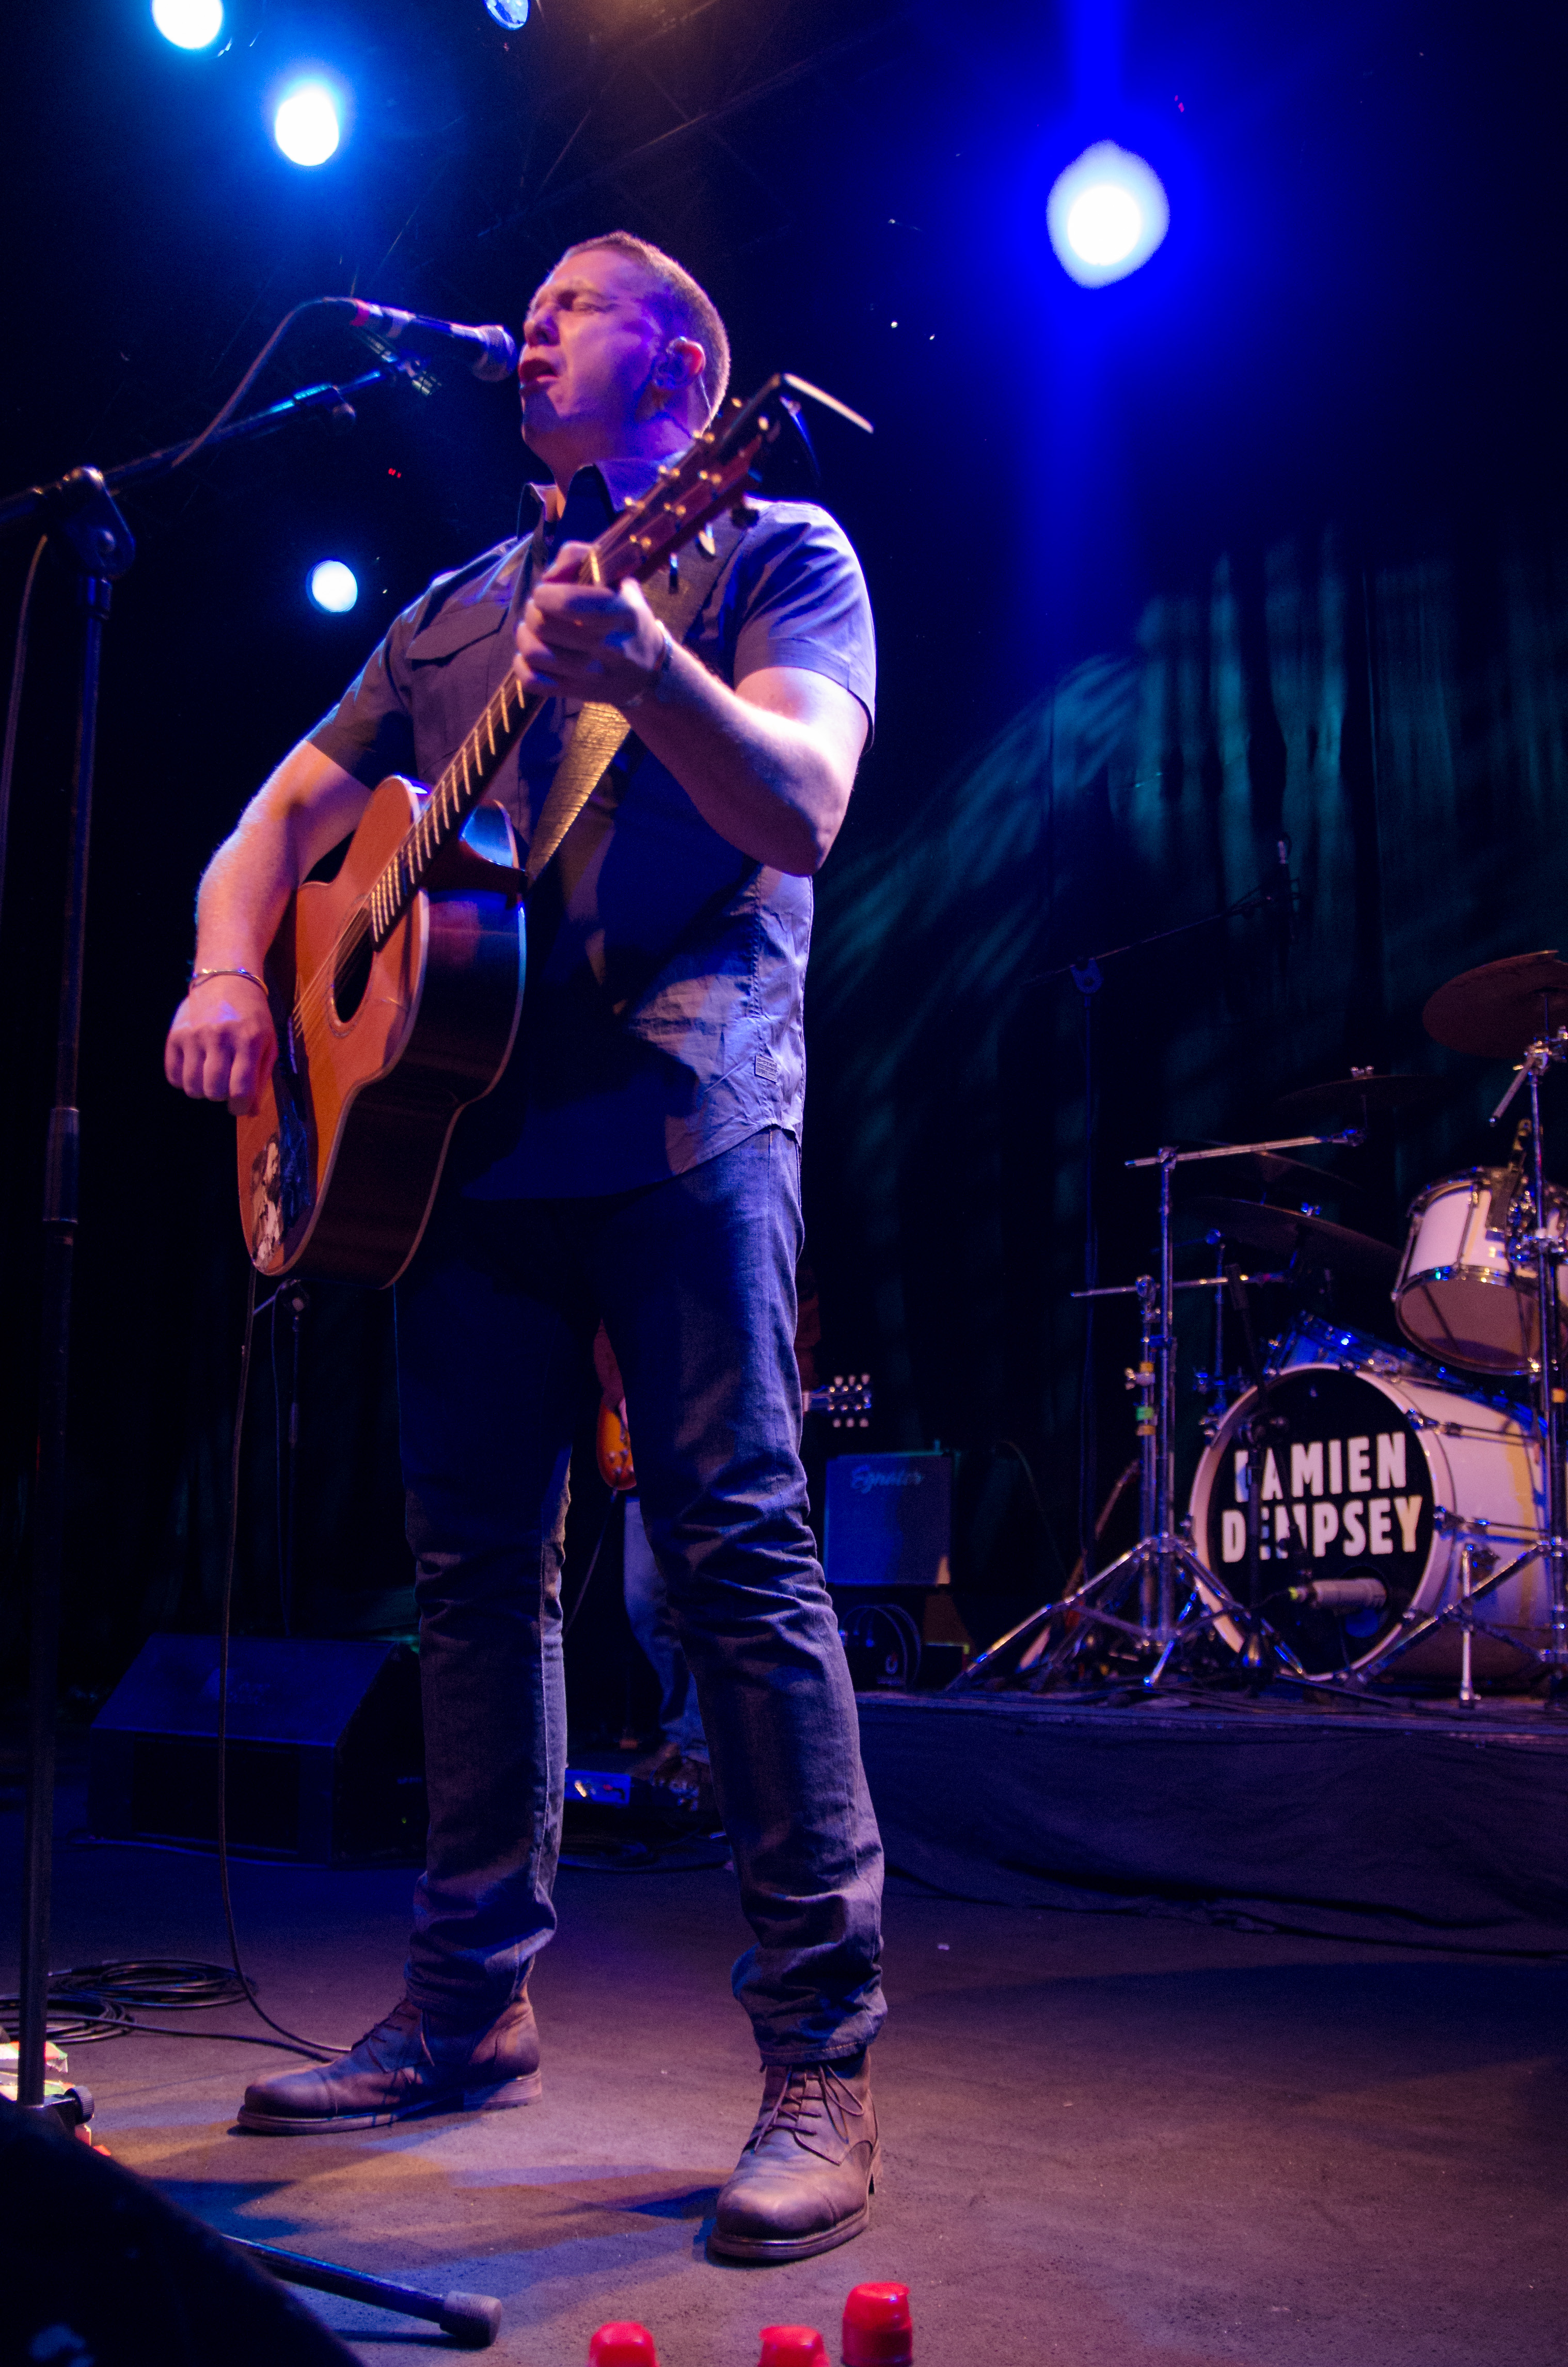 damien-dempsey-at-vicar-street-by-sean-smyth-9-12-15-7-of-34